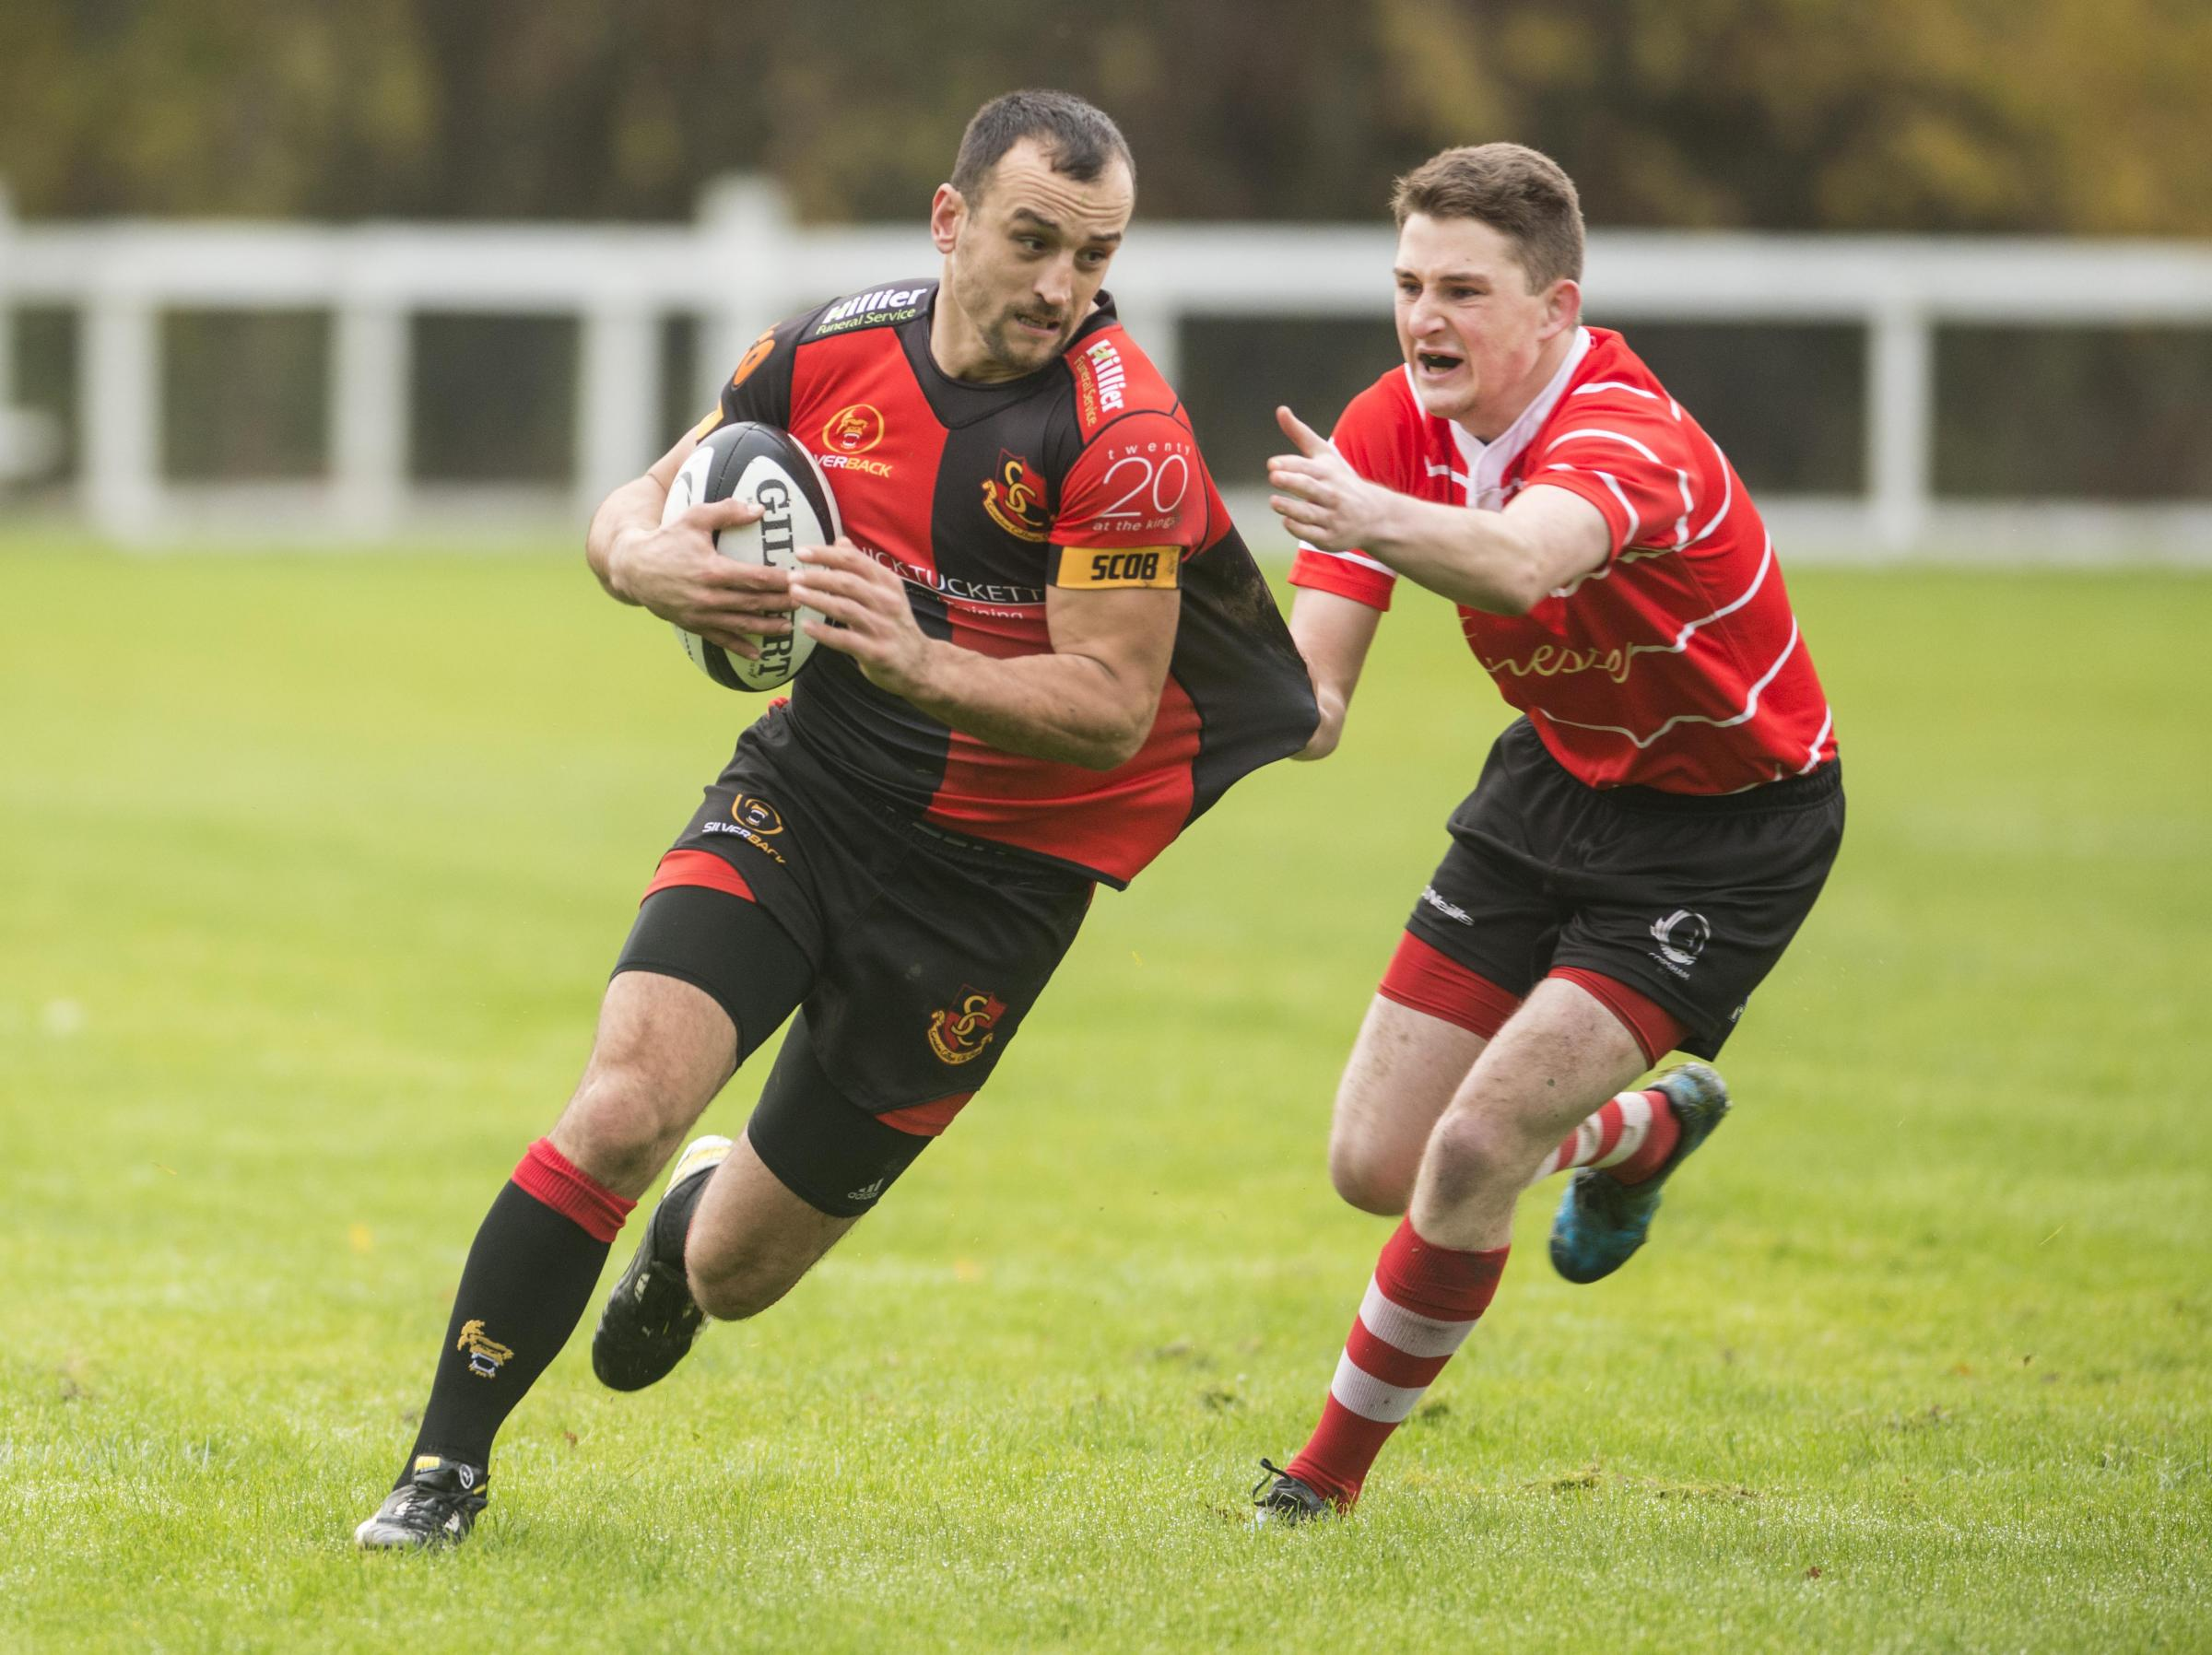 Florin Palcau powers over for Swindon College Old Boys' final try in their impressive 26-5 win over Corsham on Saturday